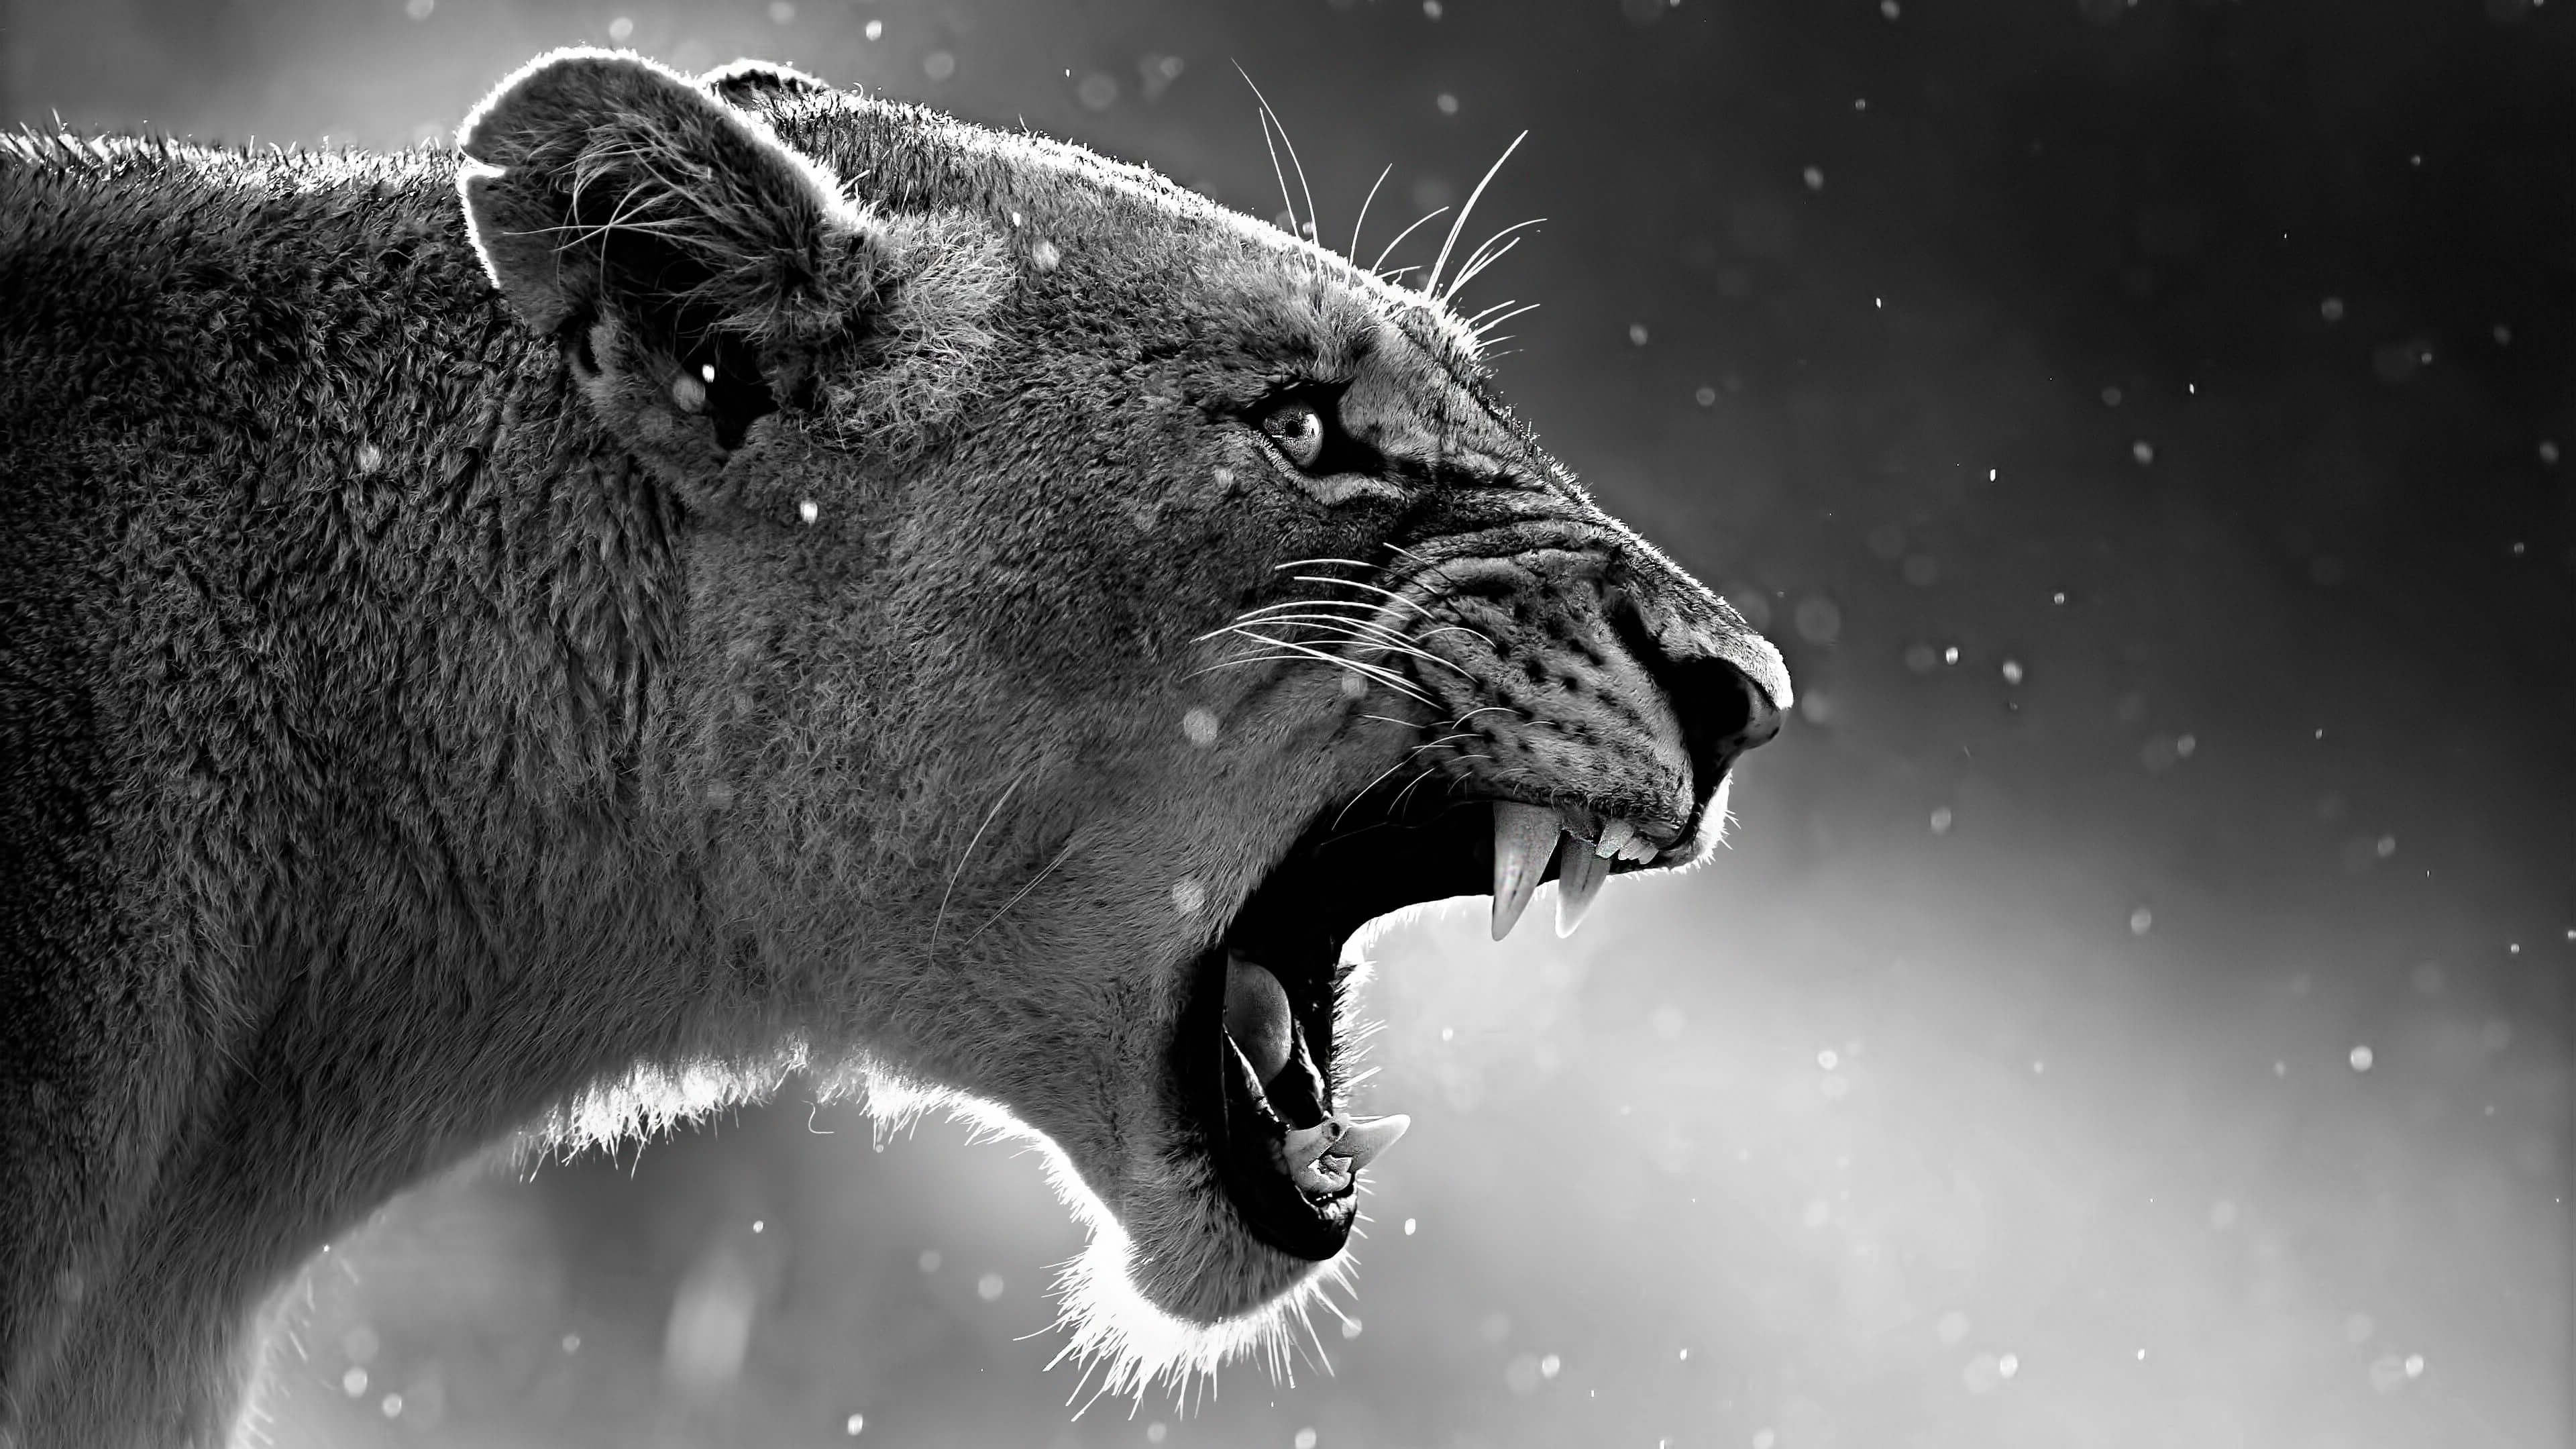 Image Of A Roaring Lion Dowload: Lion Roaring, HD Animals, 4k Wallpapers, Images